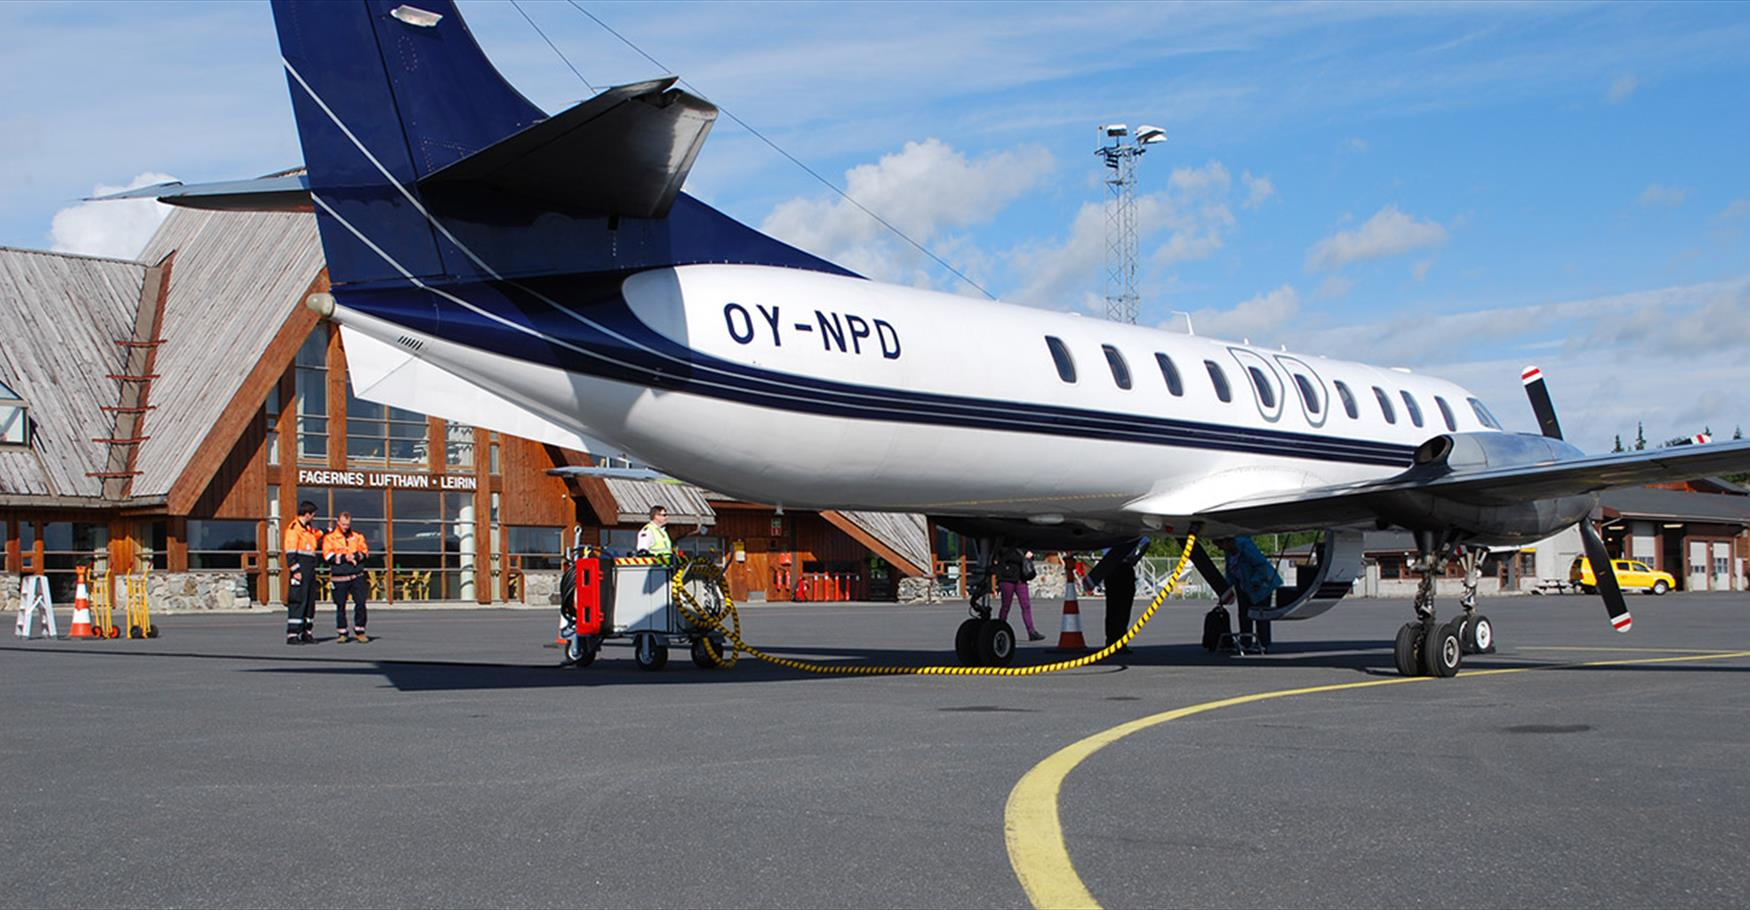 Air Norway operates sceduled flights from Oslo to Fagernes.